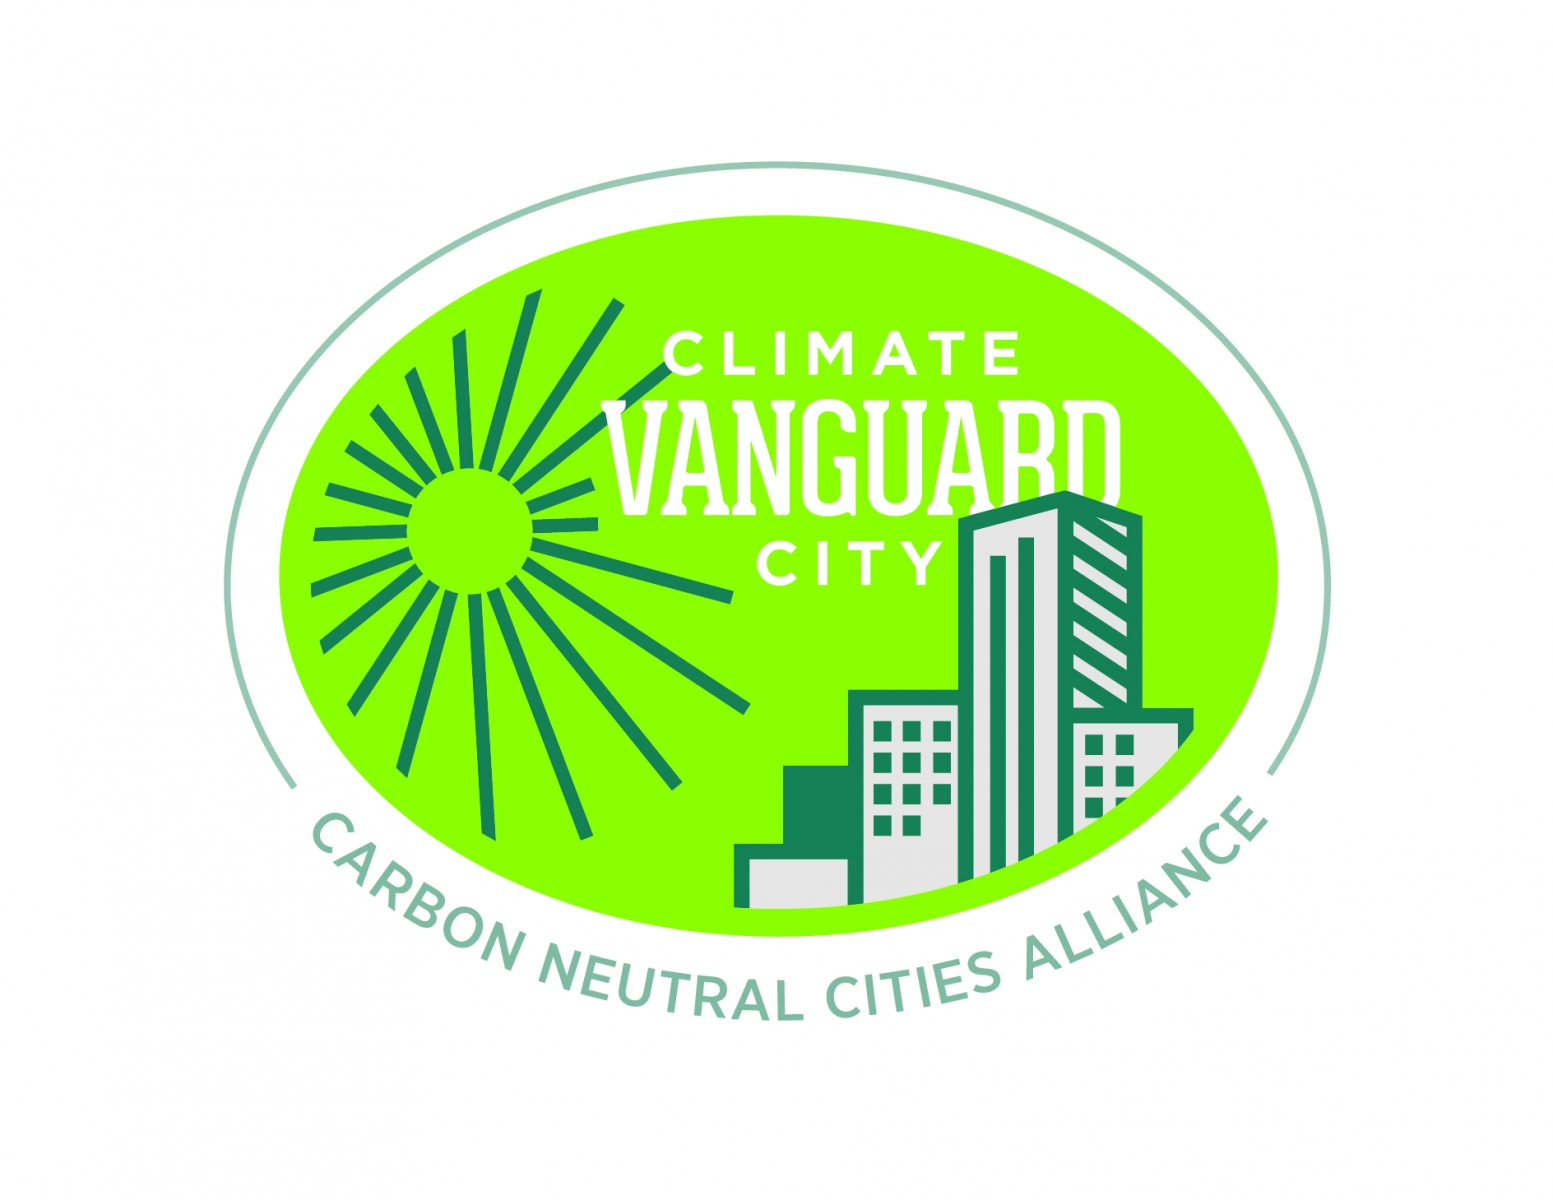 Climate Vanguard: Carbon Neutral Cities Alliance